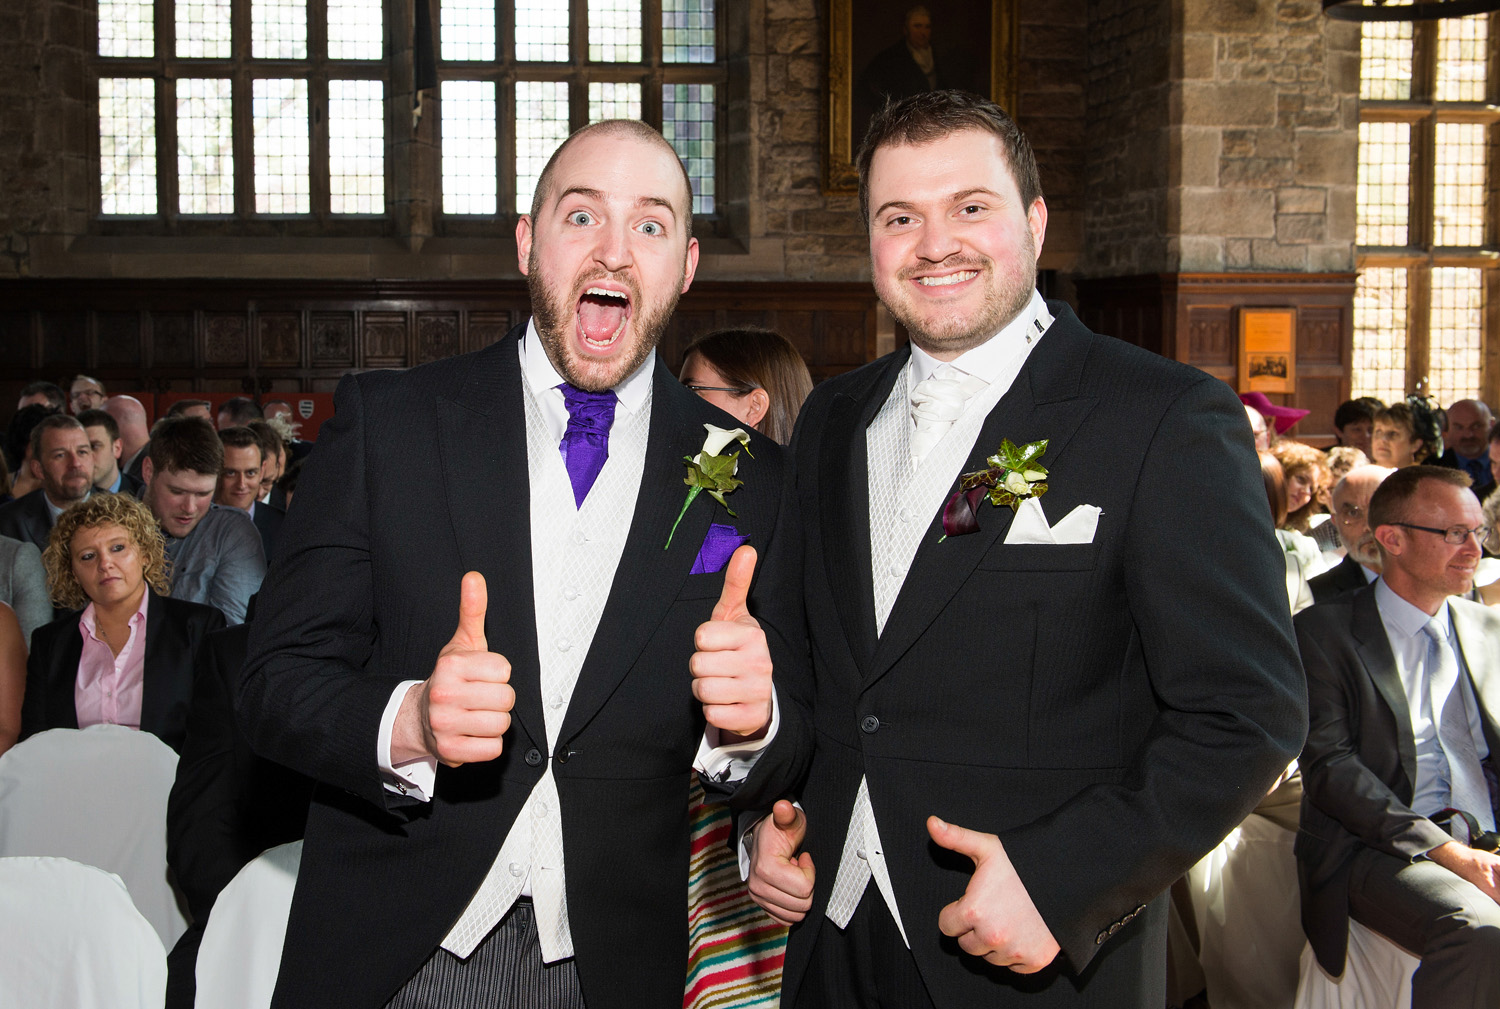 A Hoghton Tower wedding photograph